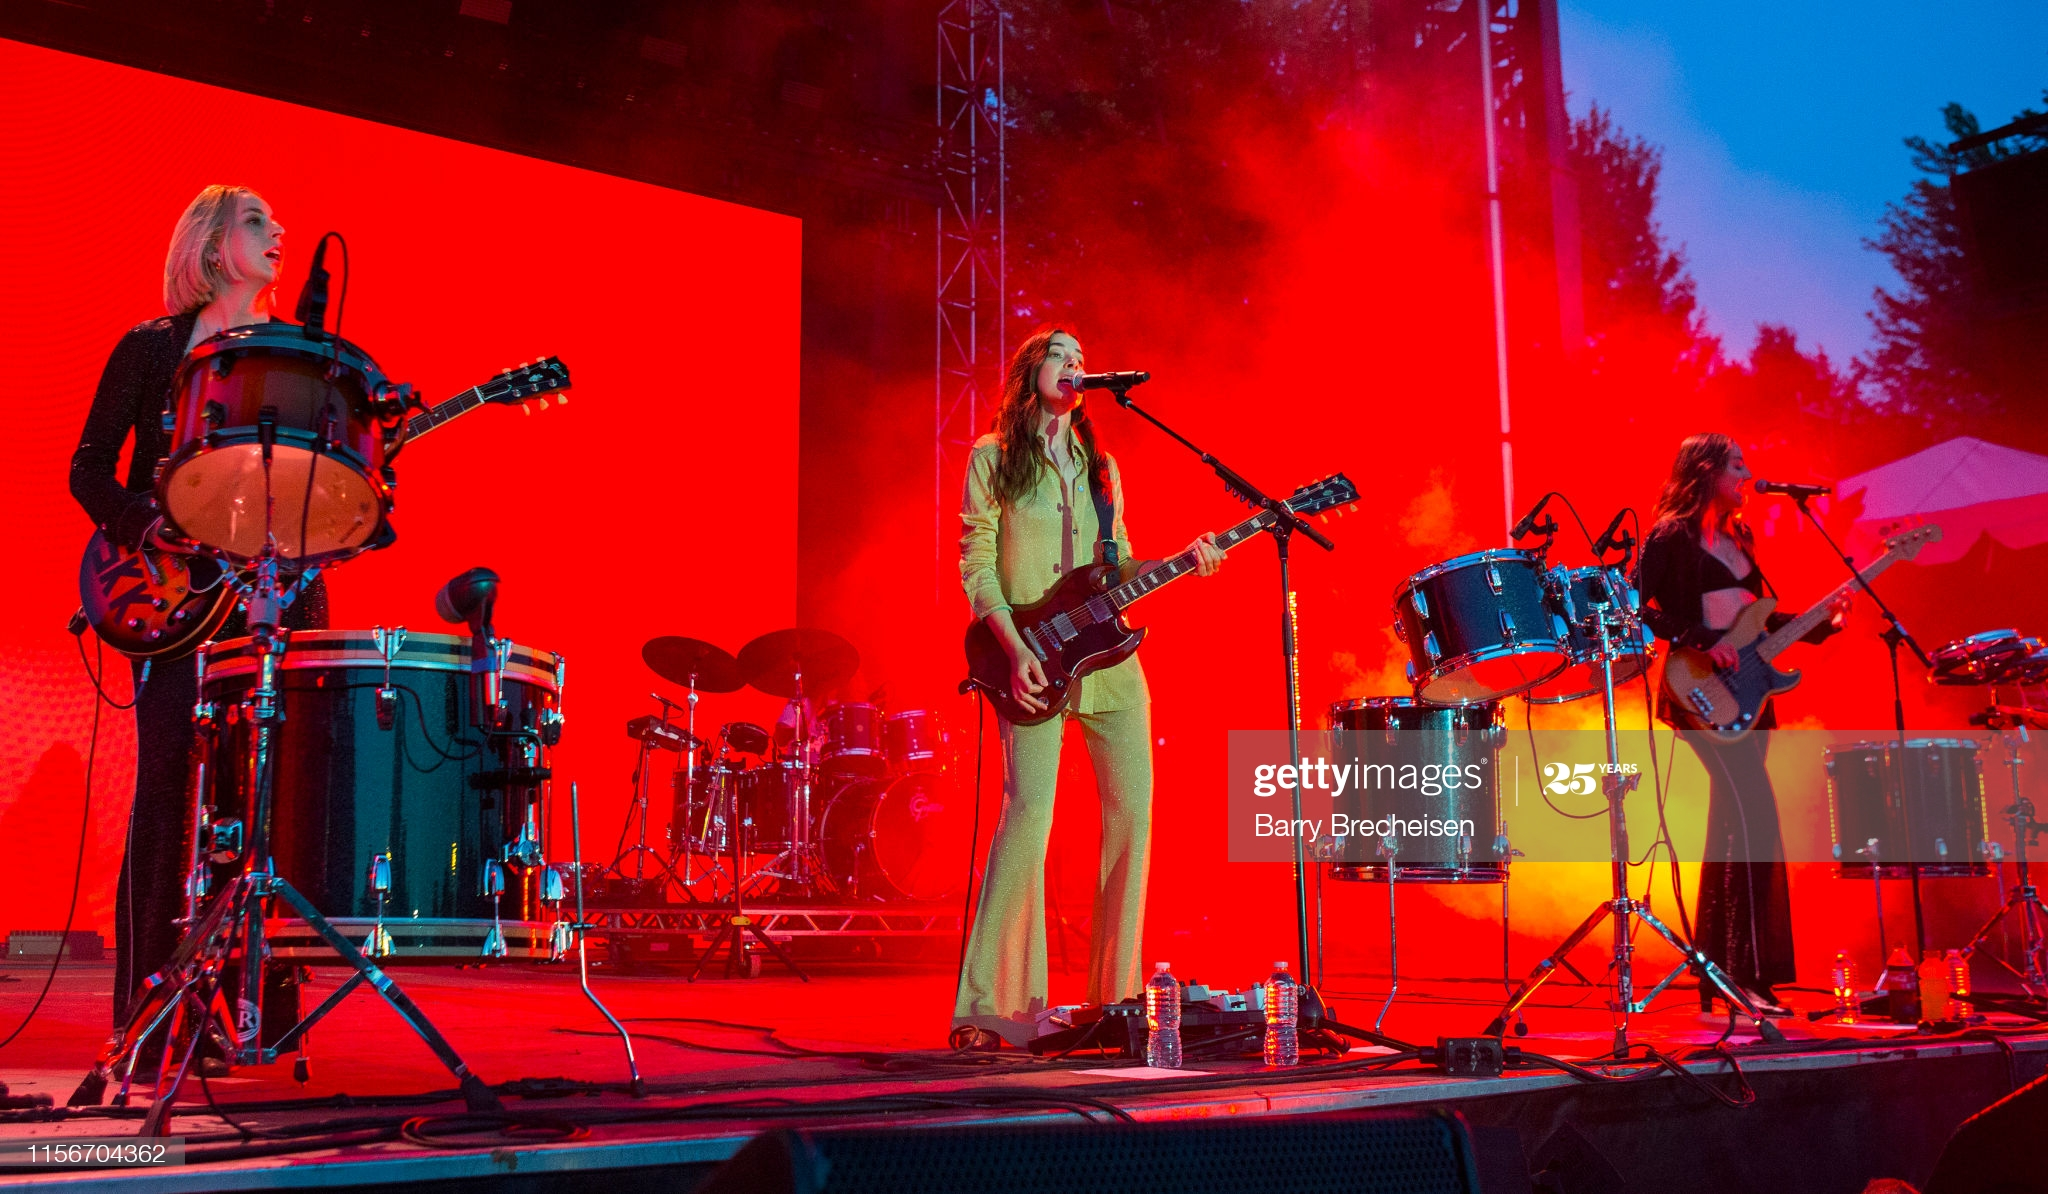 CHICAGO, IL - JULY 19: Alana Haim, Danielle Haim, Este Haim of Haim perform at the 2019 Pitchfork Music Festival at Union Park on July 19, 2019 in Chicago, Illinois. (Photo by Barry Brecheisen/WireImage)